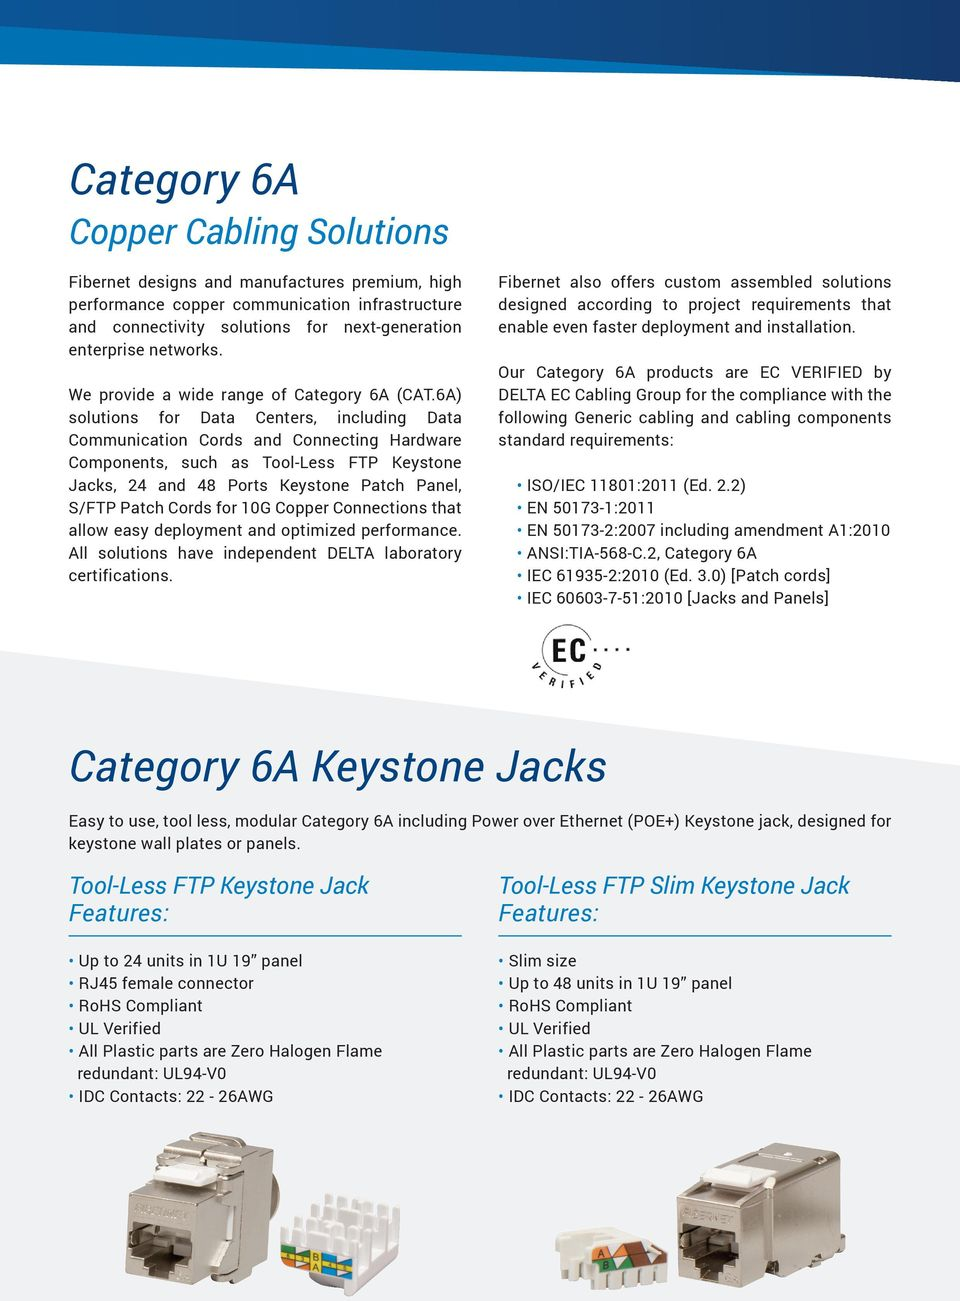 6A) solutions for Data Centers, including Data Communication Cords and Connecting Hardware Components, such as Tool-Less FTP Keystone Jacks, 24 and 48 Ports Keystone Patch Panel, S/FTP Patch Cords